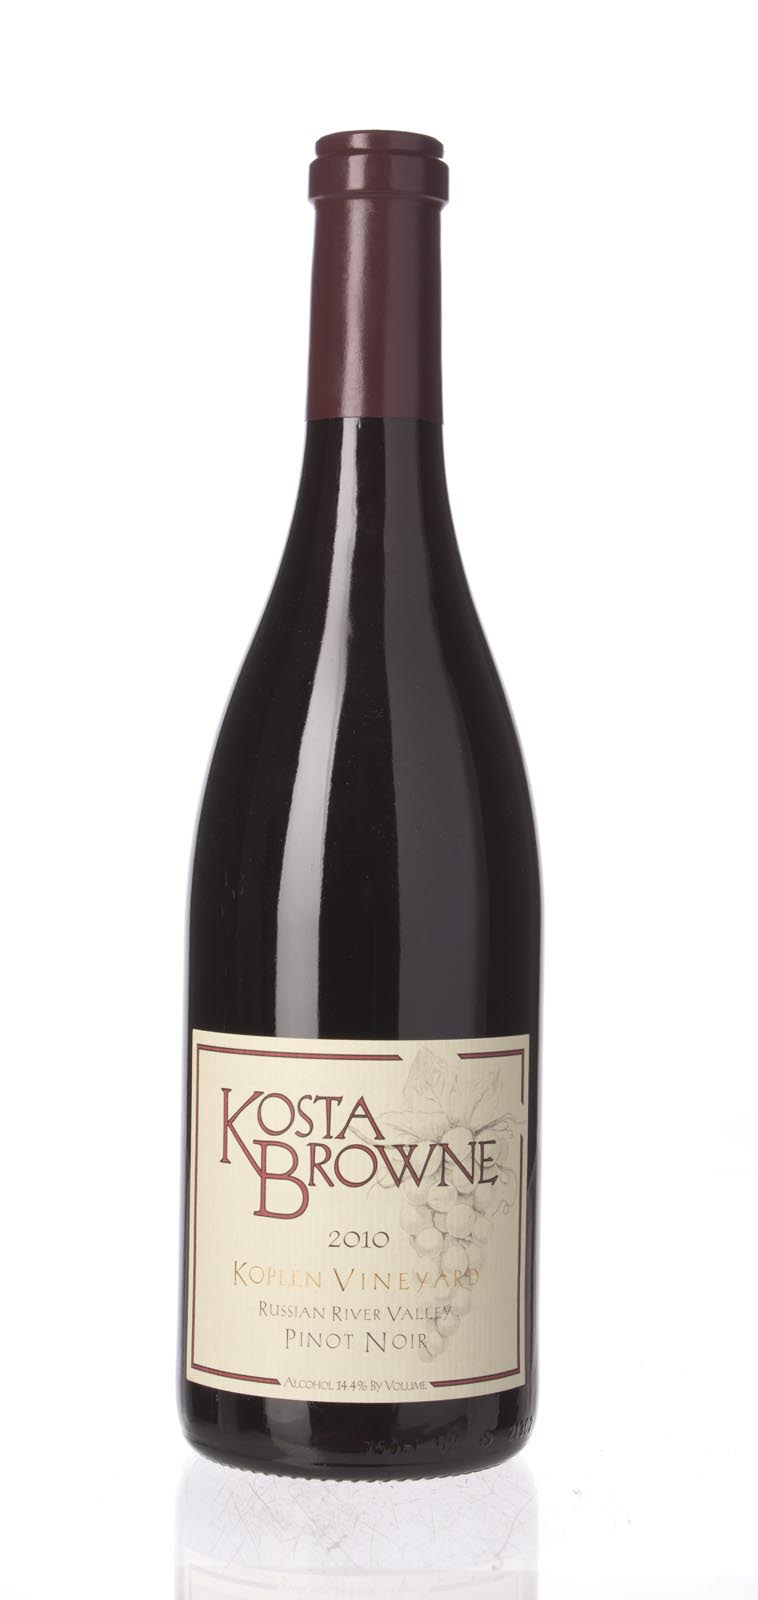 Kosta Browne Pinot Noir Koplen Vineyard 2010, 750mL (ST92, WS92) from The BPW - Merchants of rare and fine wines.